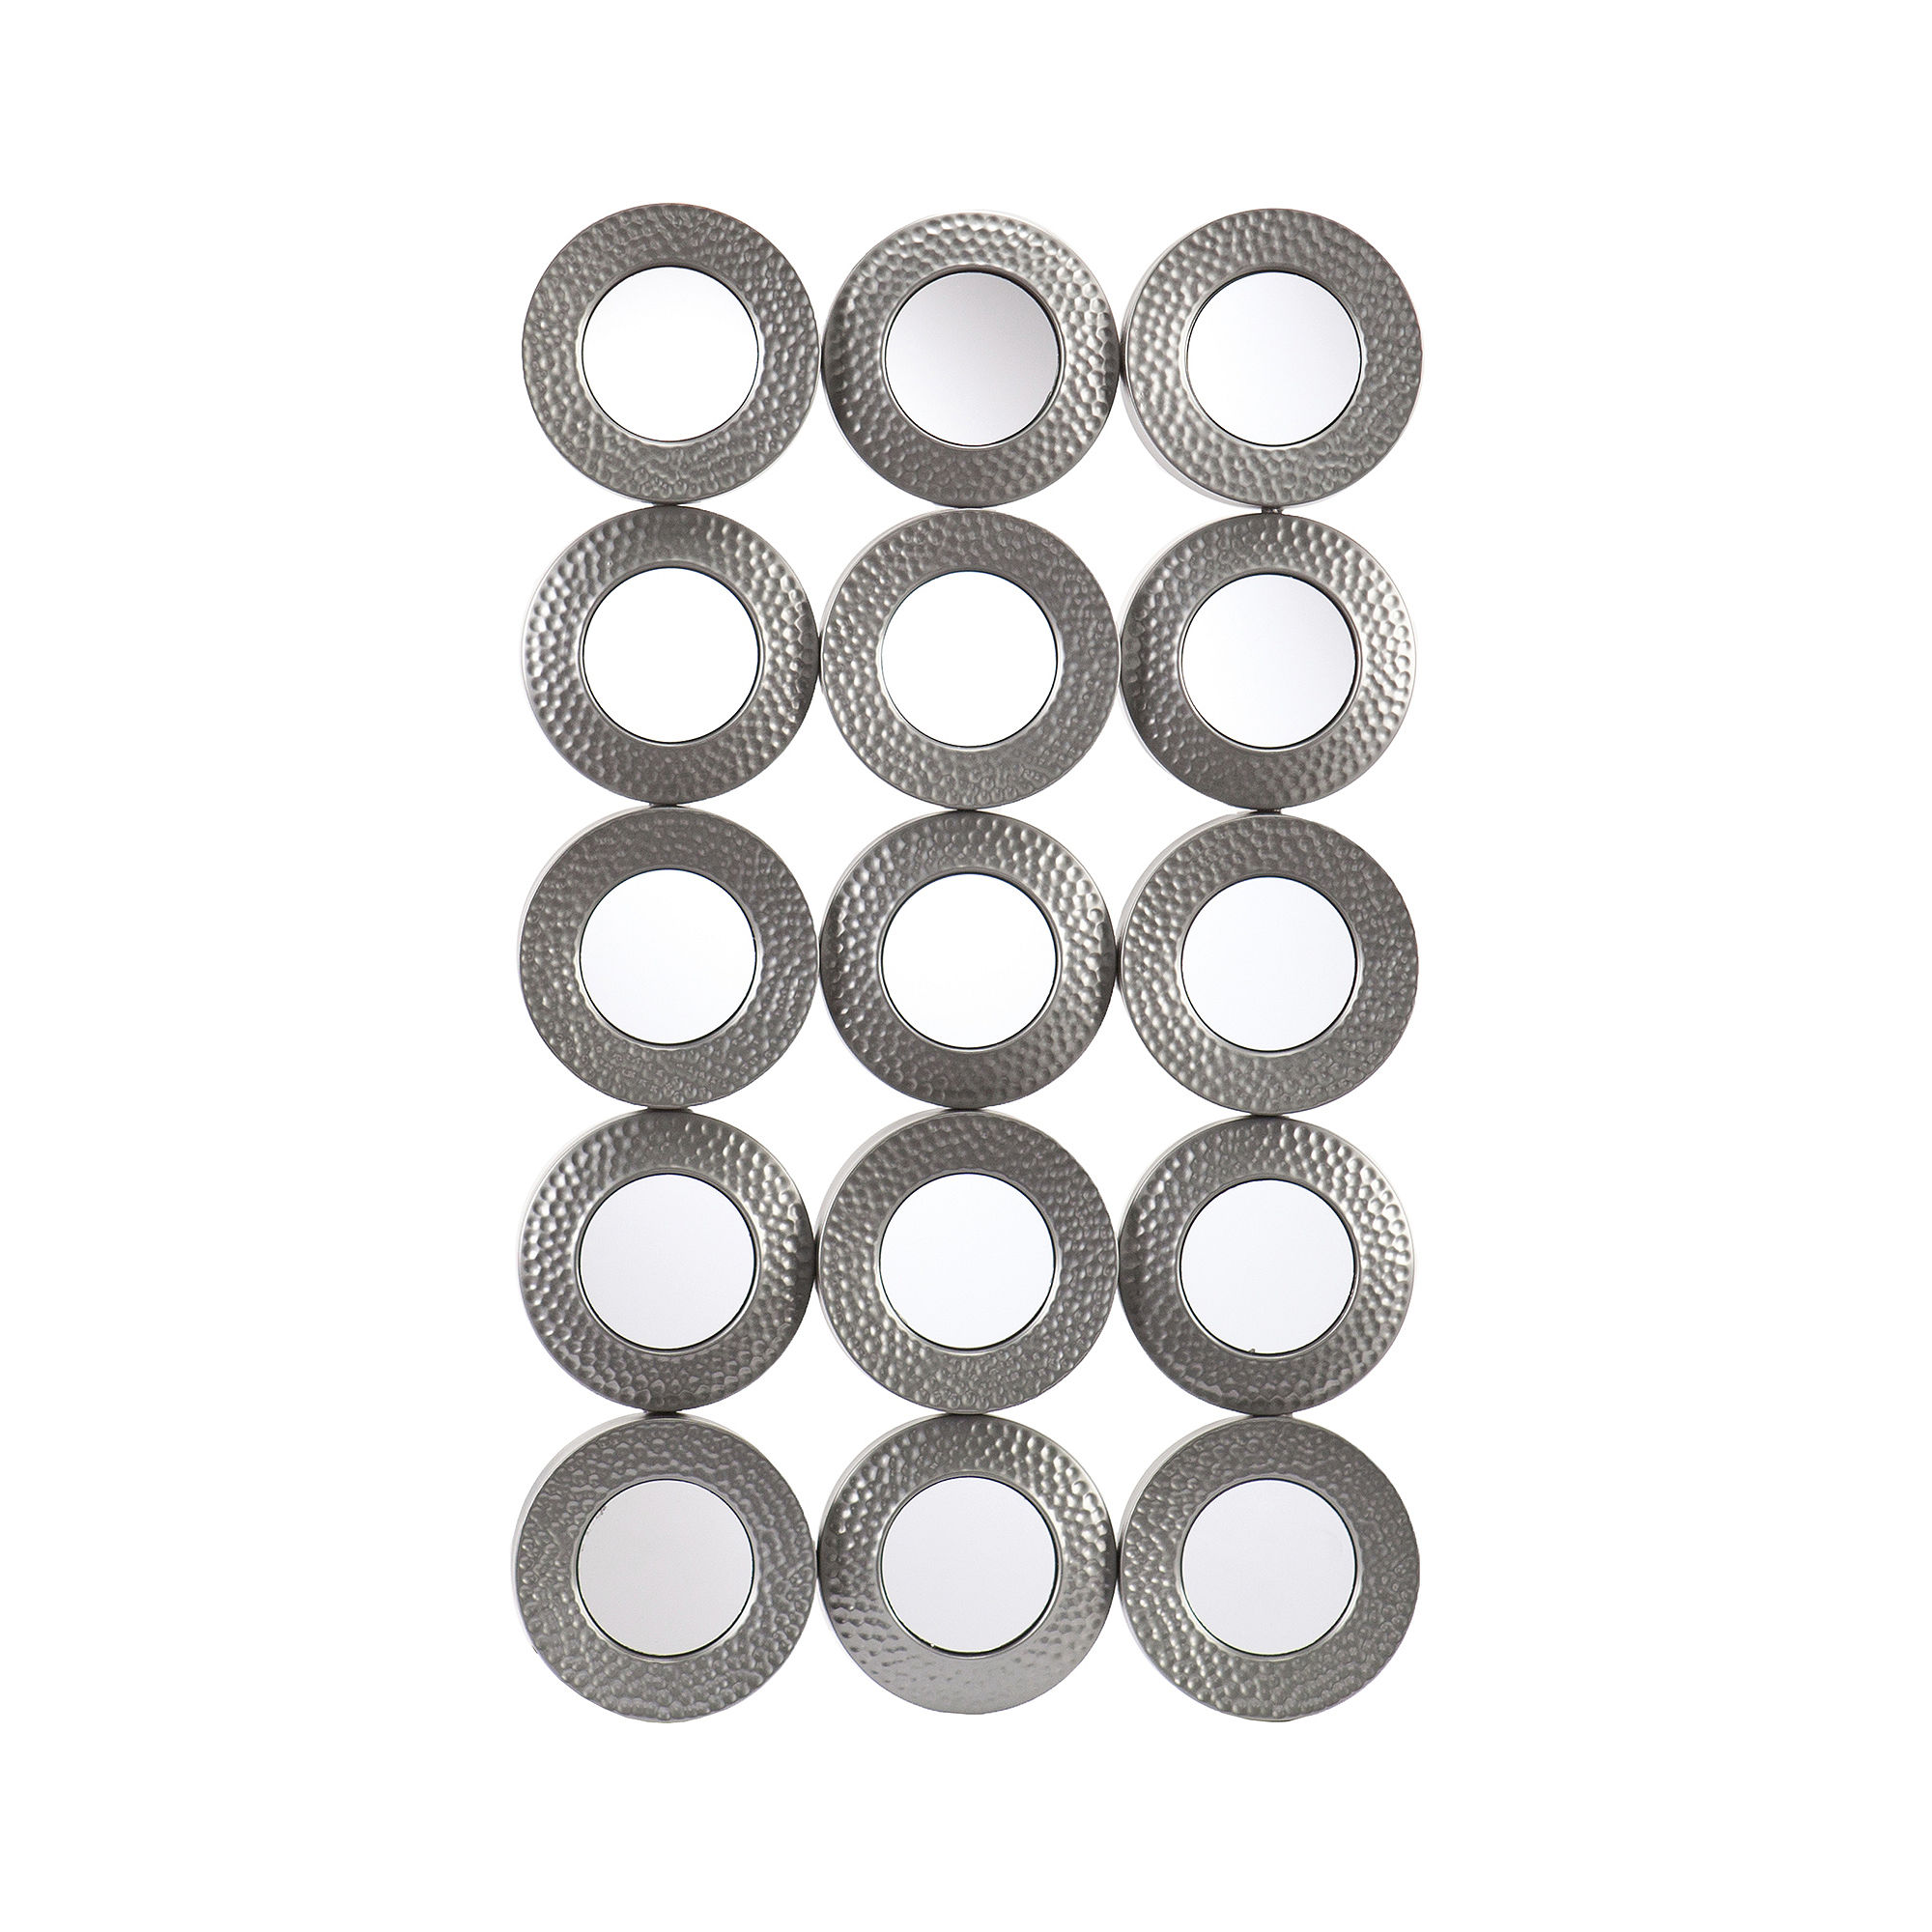 Sphere Sculpture Grid Wall Decor